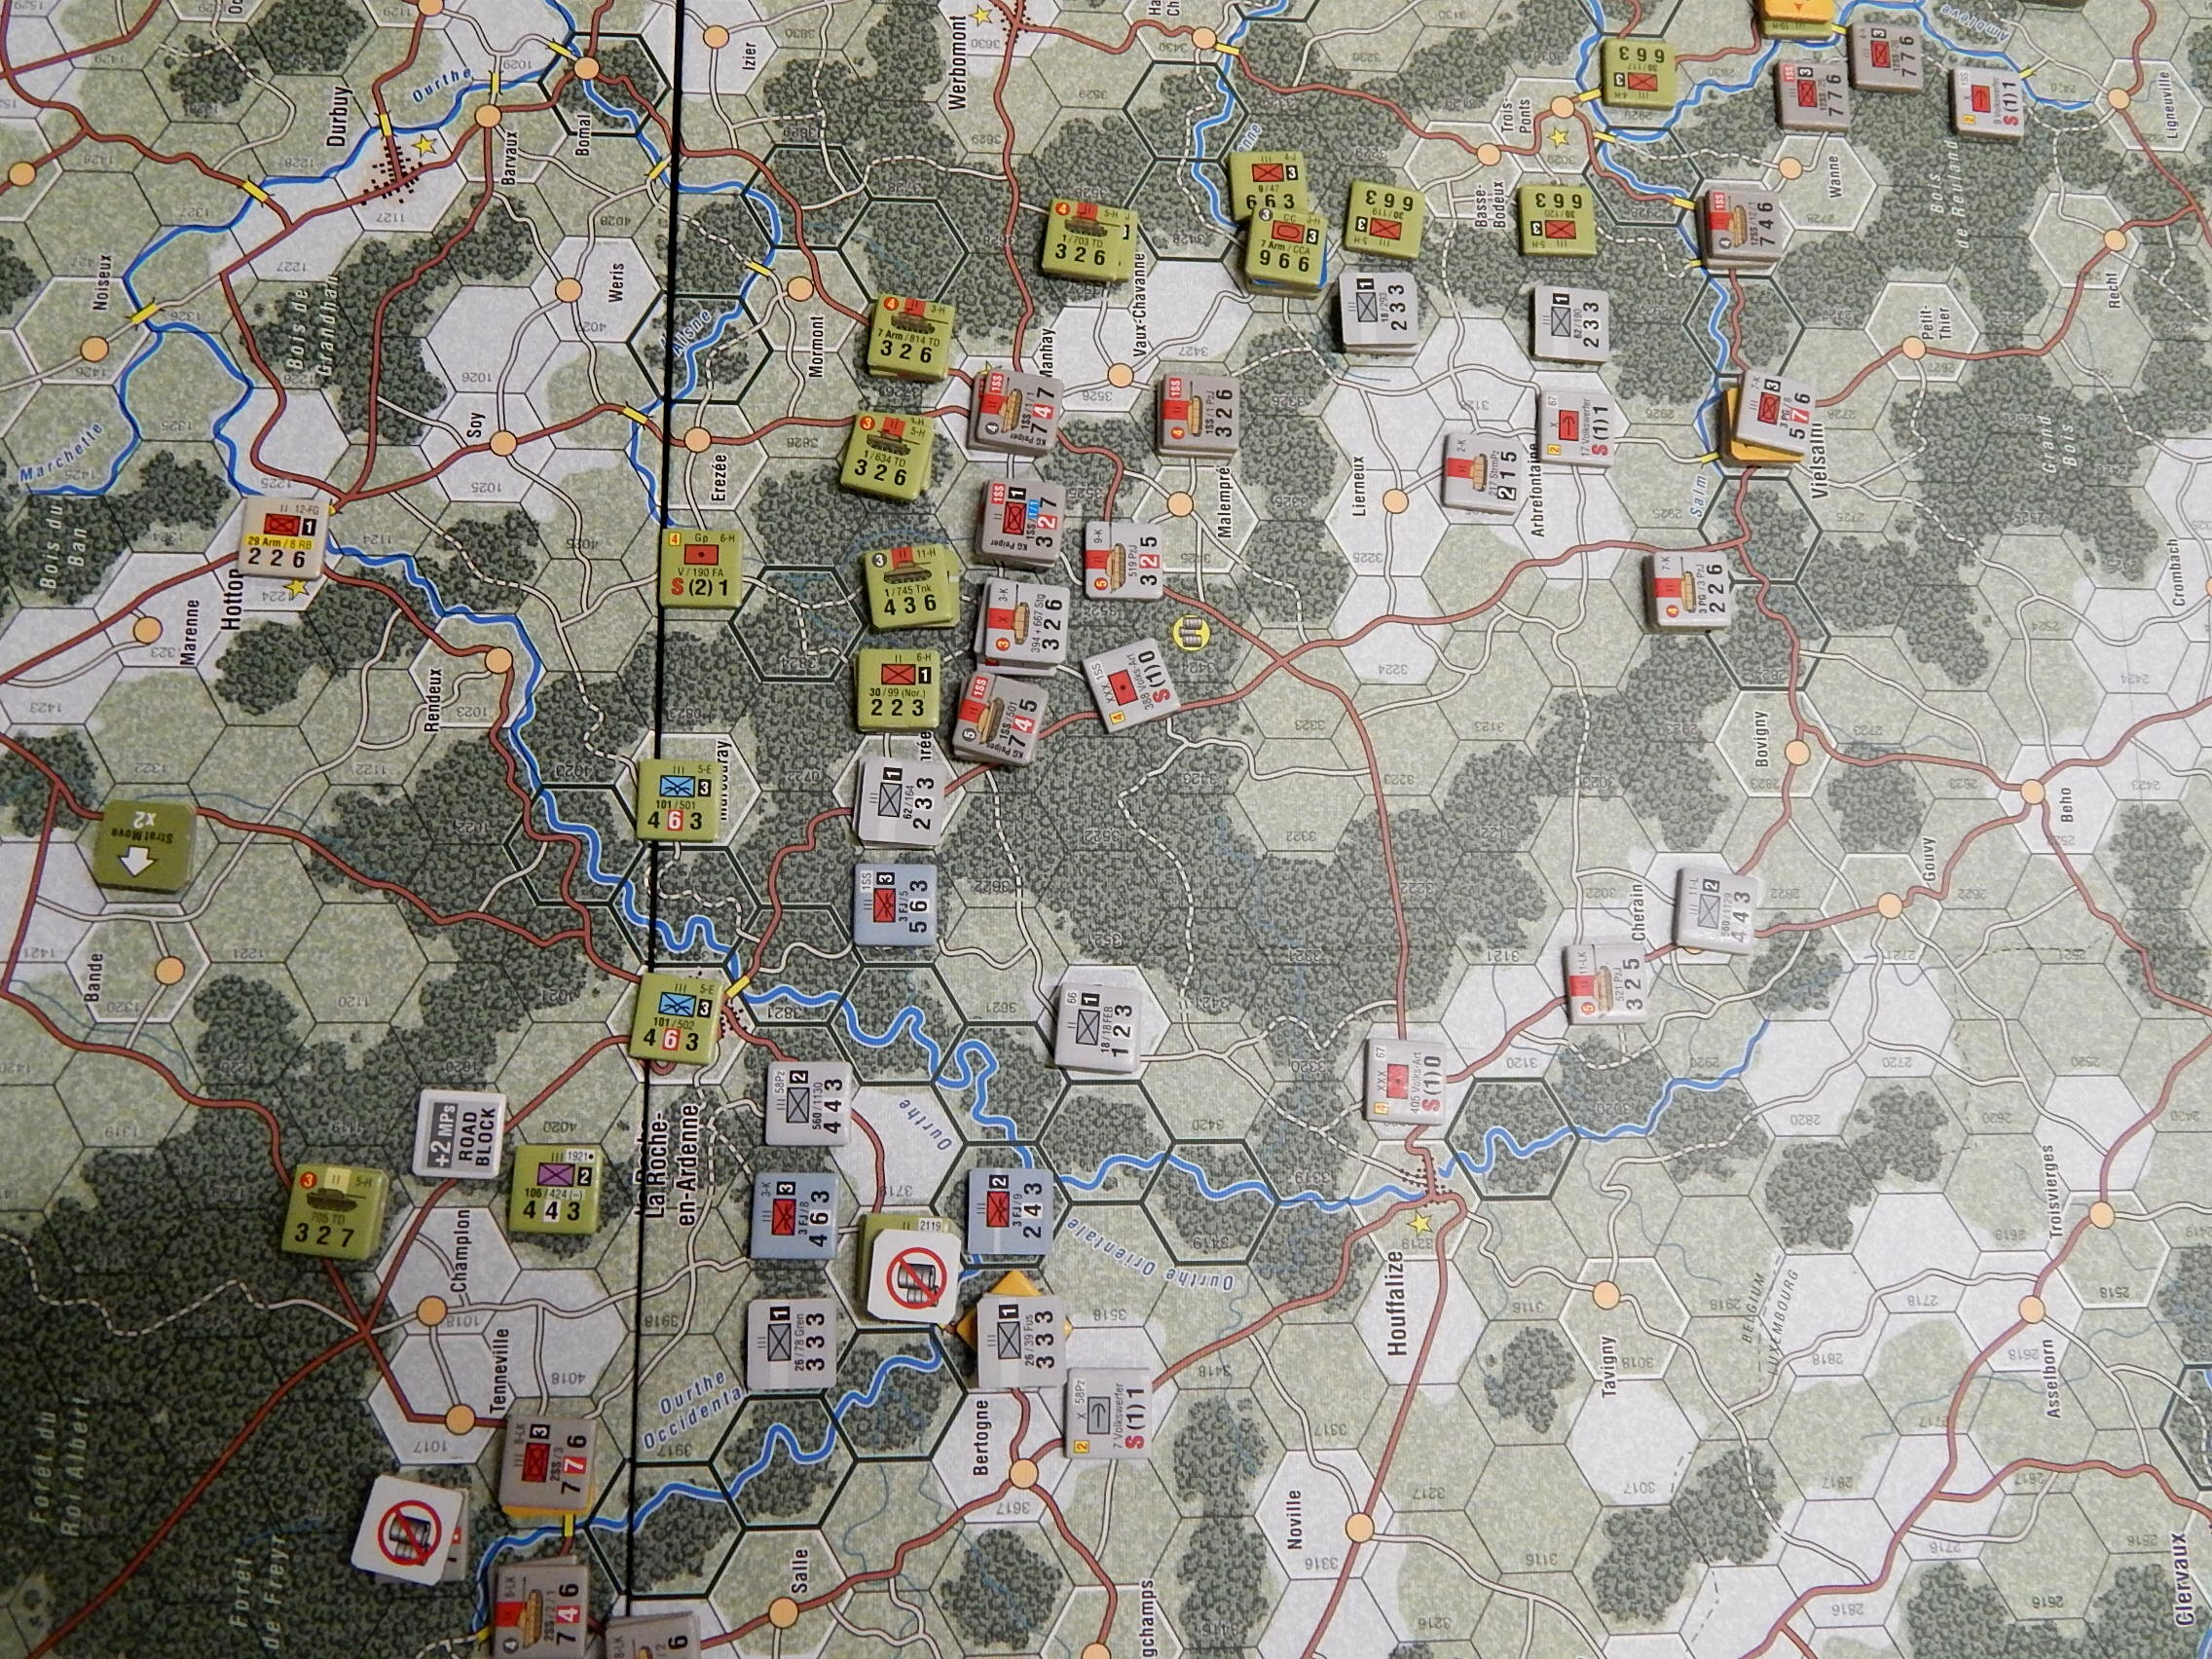 https://i.ibb.co/vcJy1qq/Ardennes-44-End-of-Play-C.jpg